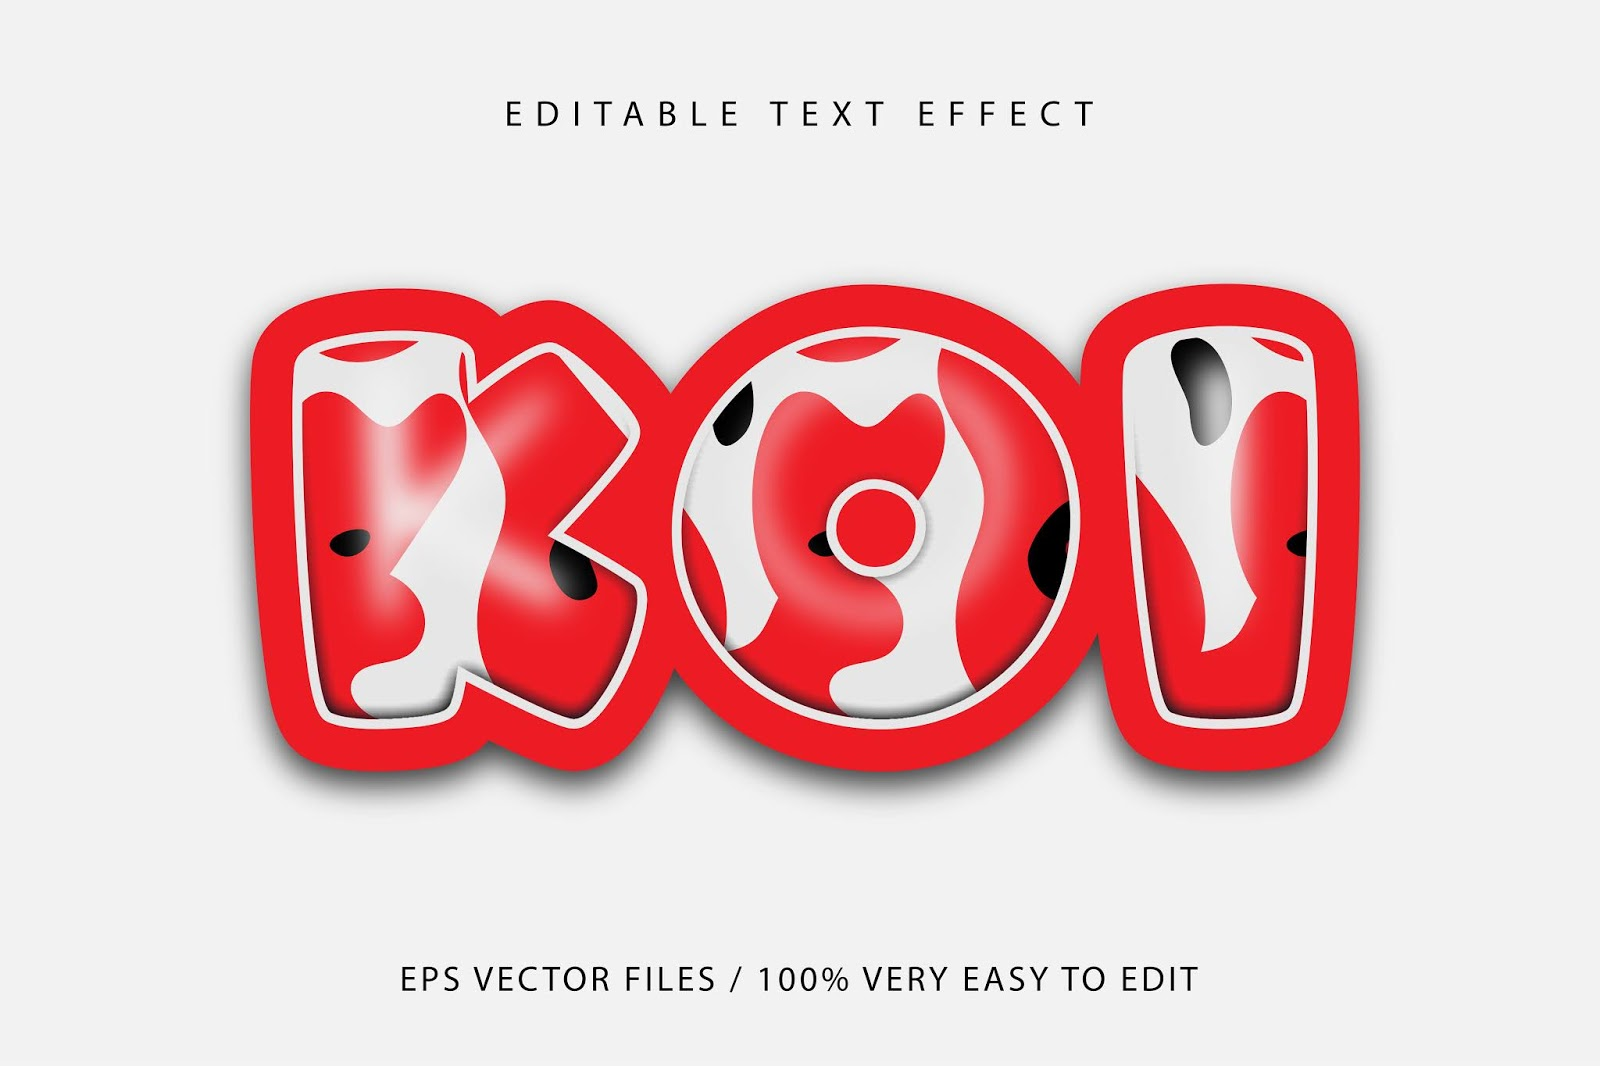 Koi Fish Pattern Text Effect Editable Text Free Download Vector CDR, AI, EPS and PNG Formats